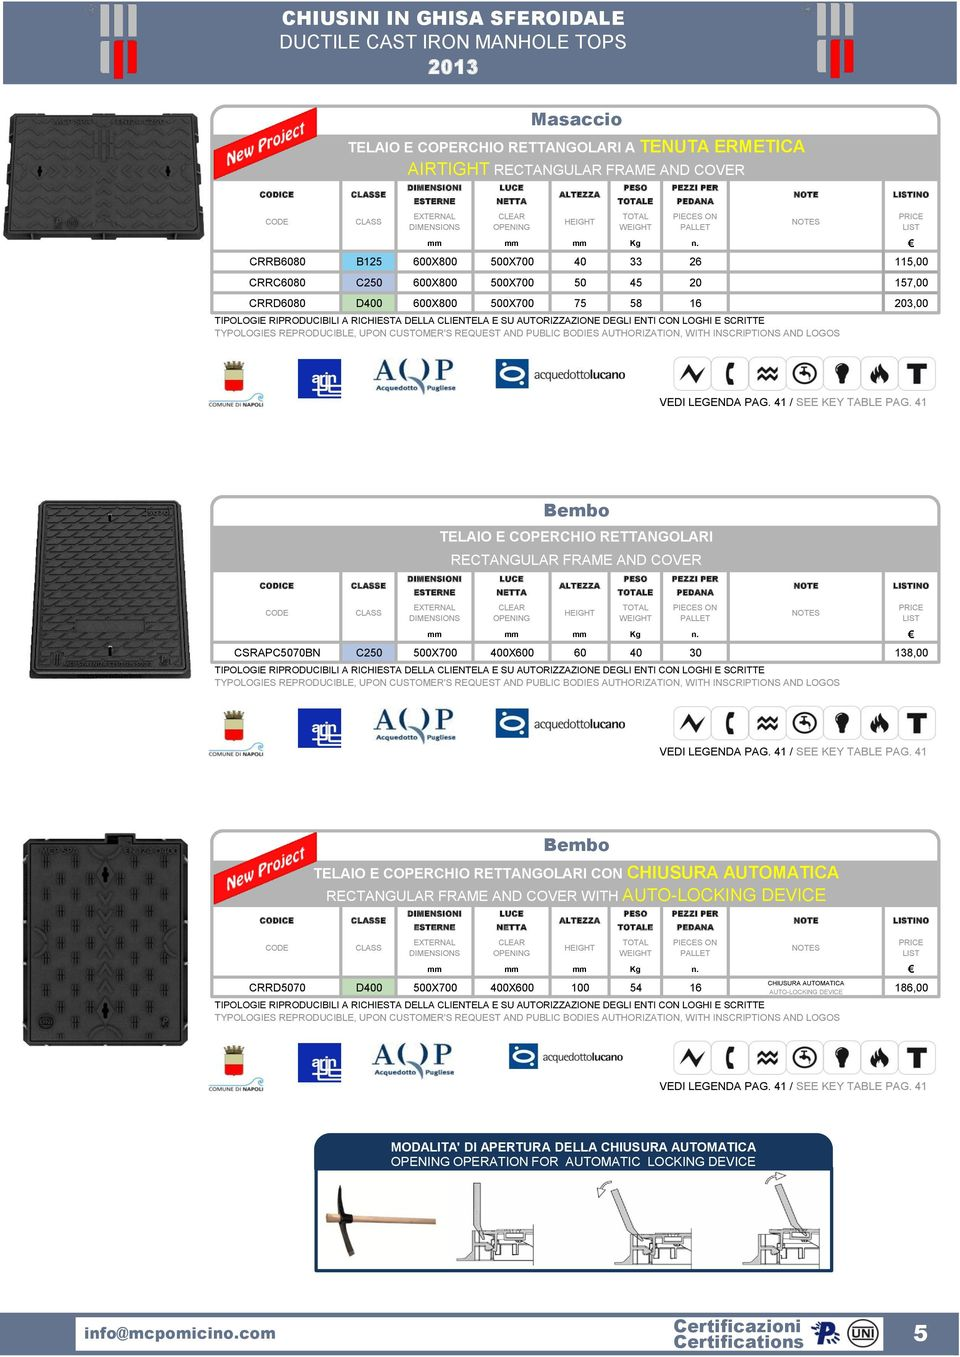 41 E Bembo TELAIO E COPERCHIO RETTANGOLARI RECTANGULAR FRAME AND COVER E CSRAPC5070BN C250 500X700 400X600 60 40 30 138,00 VEDI LEGENDA PAG. 41 / SEE KEY TABLE PAG.